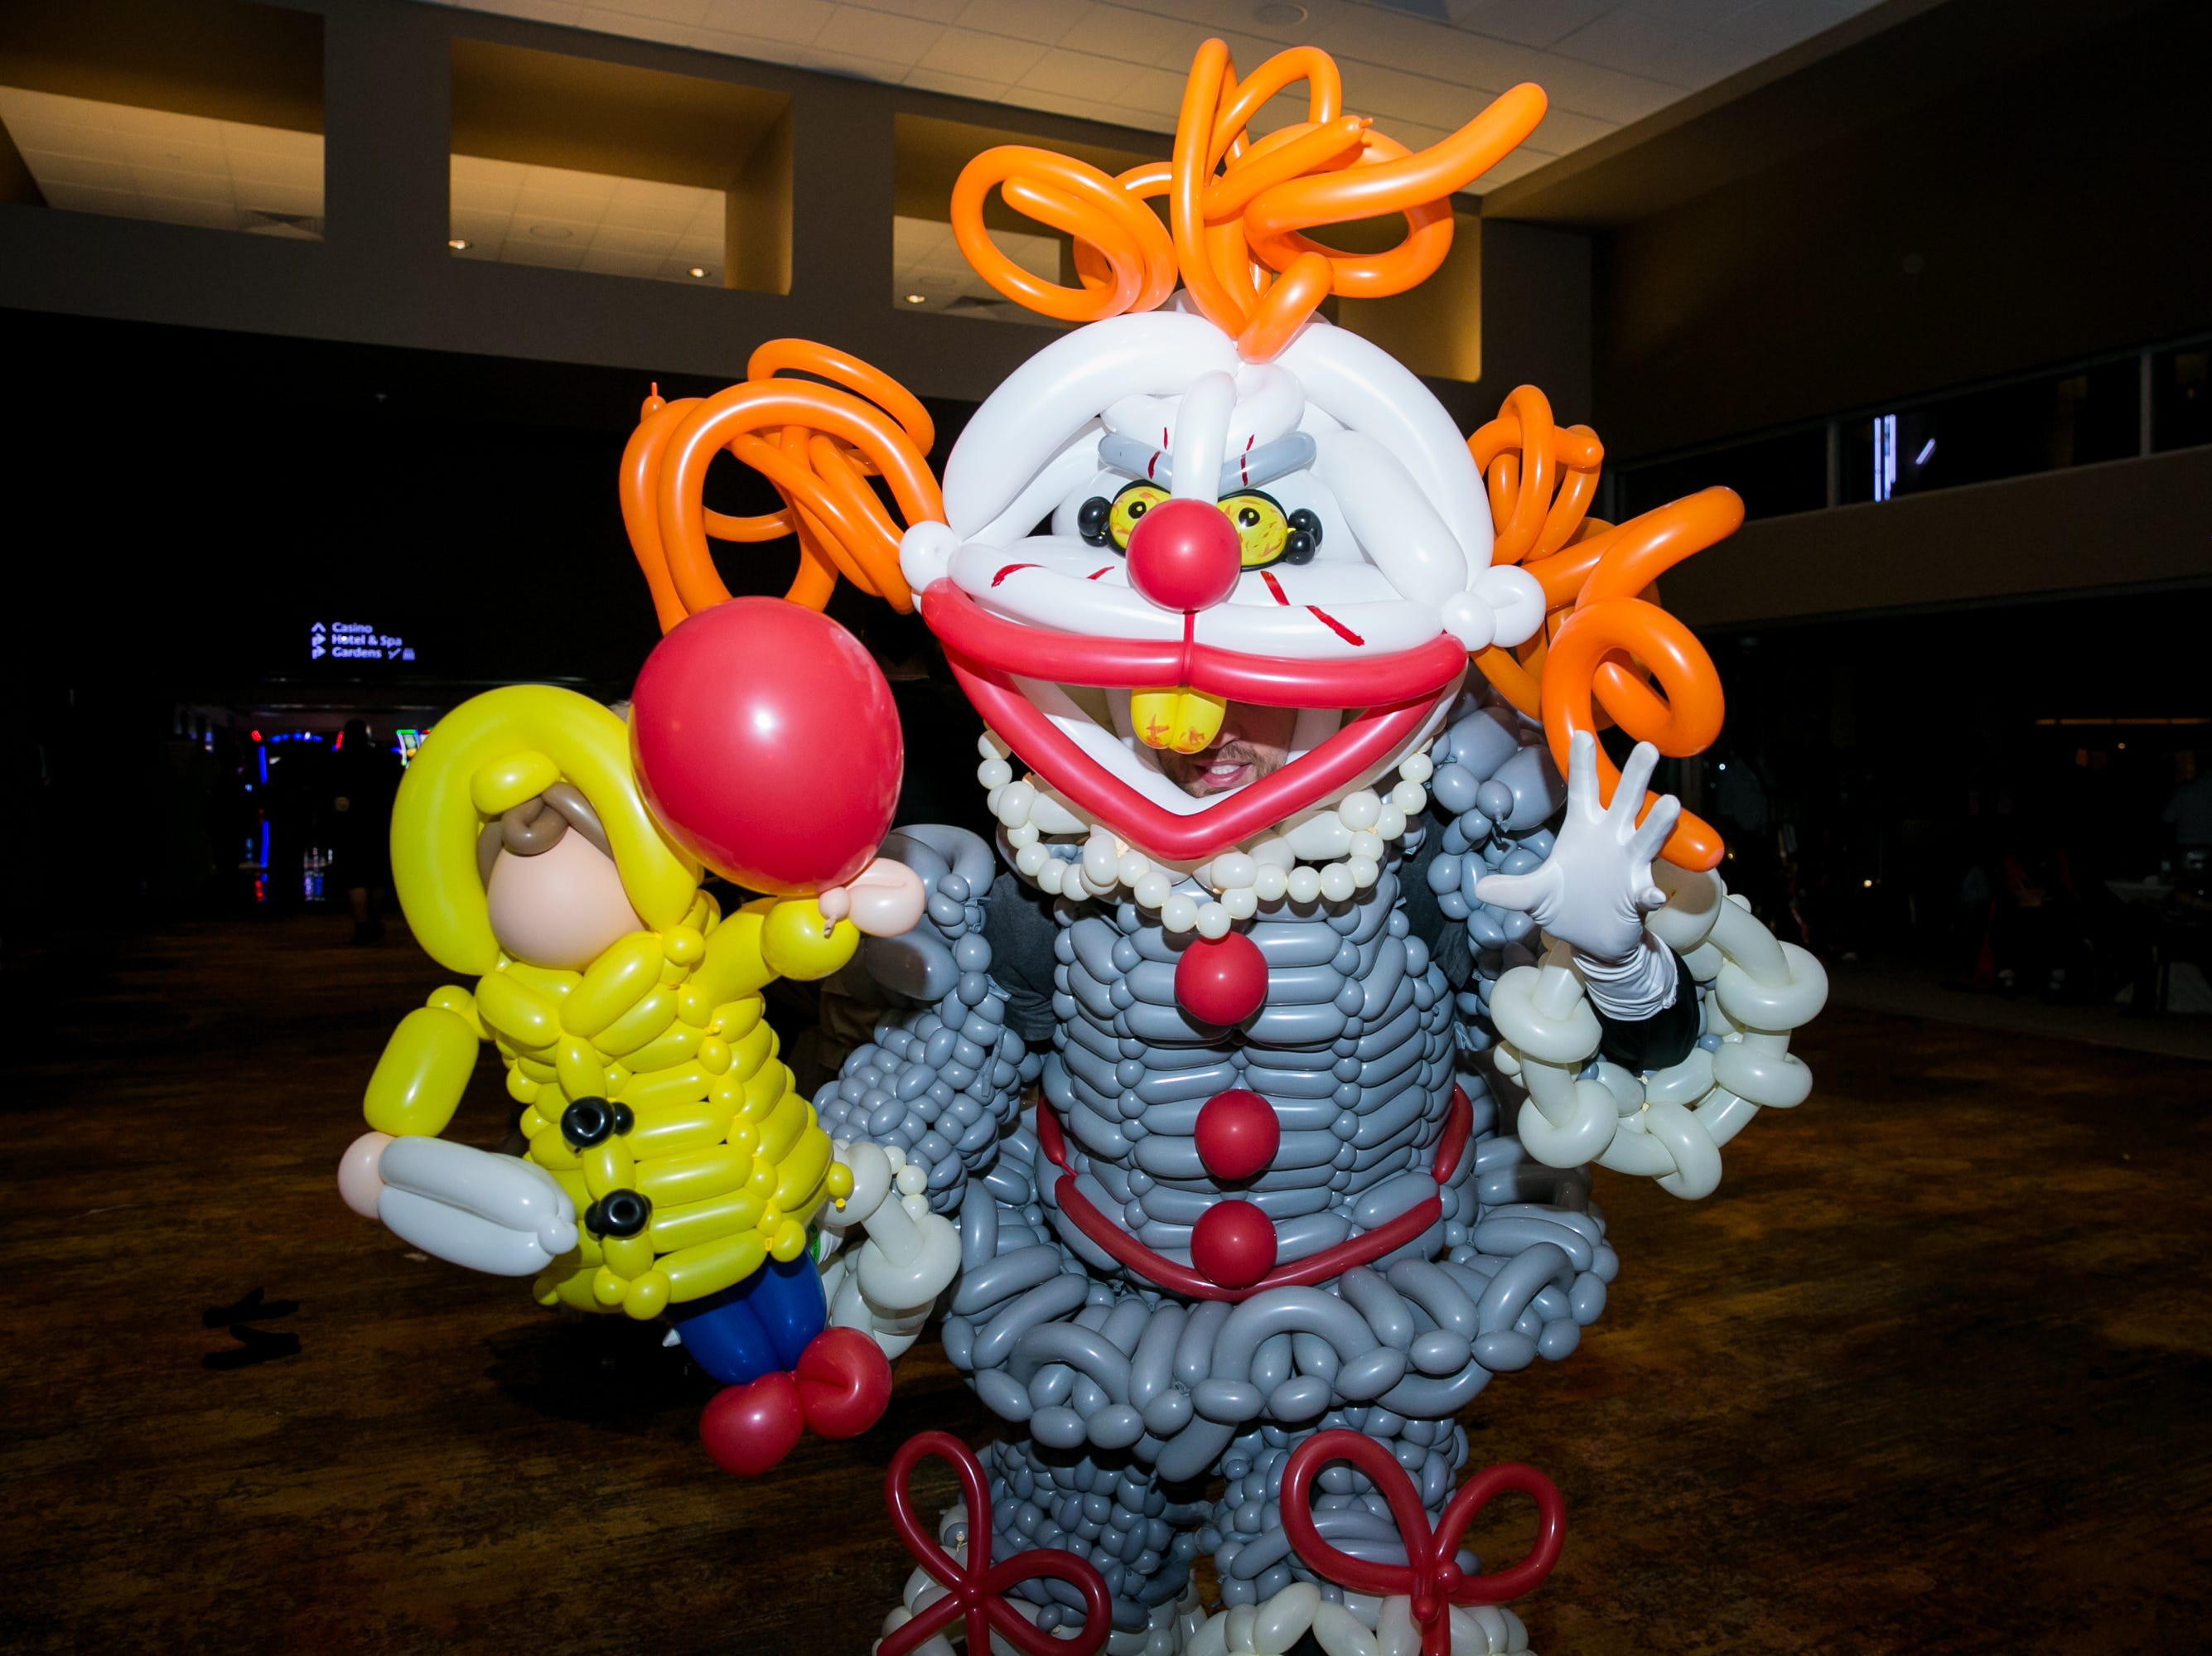 Pennywise took on a new form during Wicked Ball at Talking Stick Resort on Saturday, October 27, 2018.